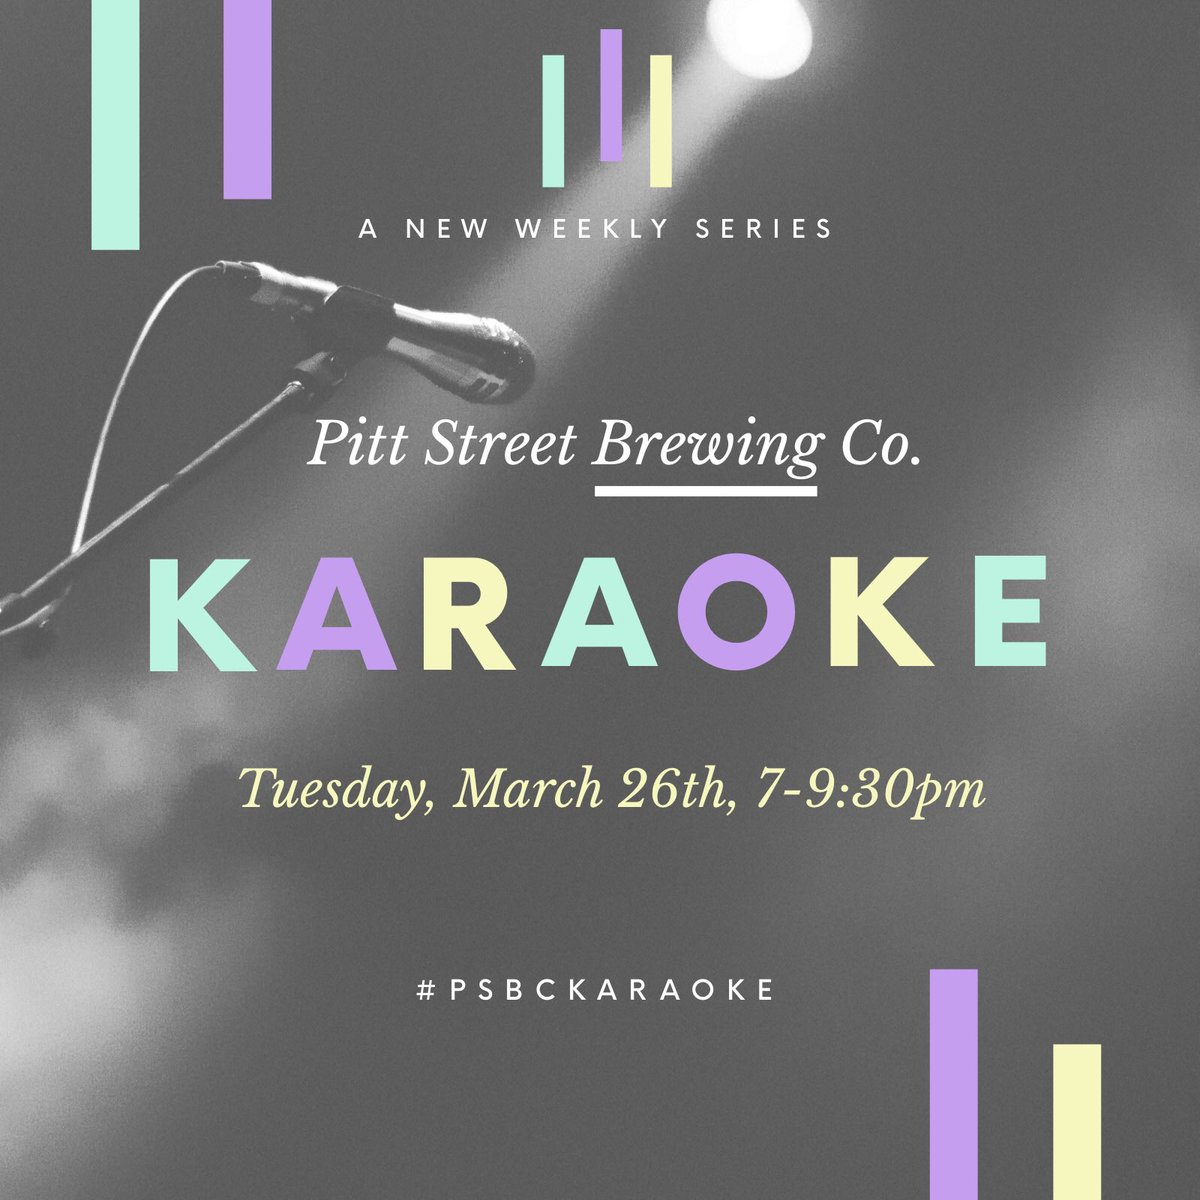 Every Tuesday at 7pm we are bringing you Karaoke with Capt Morgan. Join us in the backroom to sing that song you've been practicing in your car for months! Sign ups start at 7pm #psbckaraoke